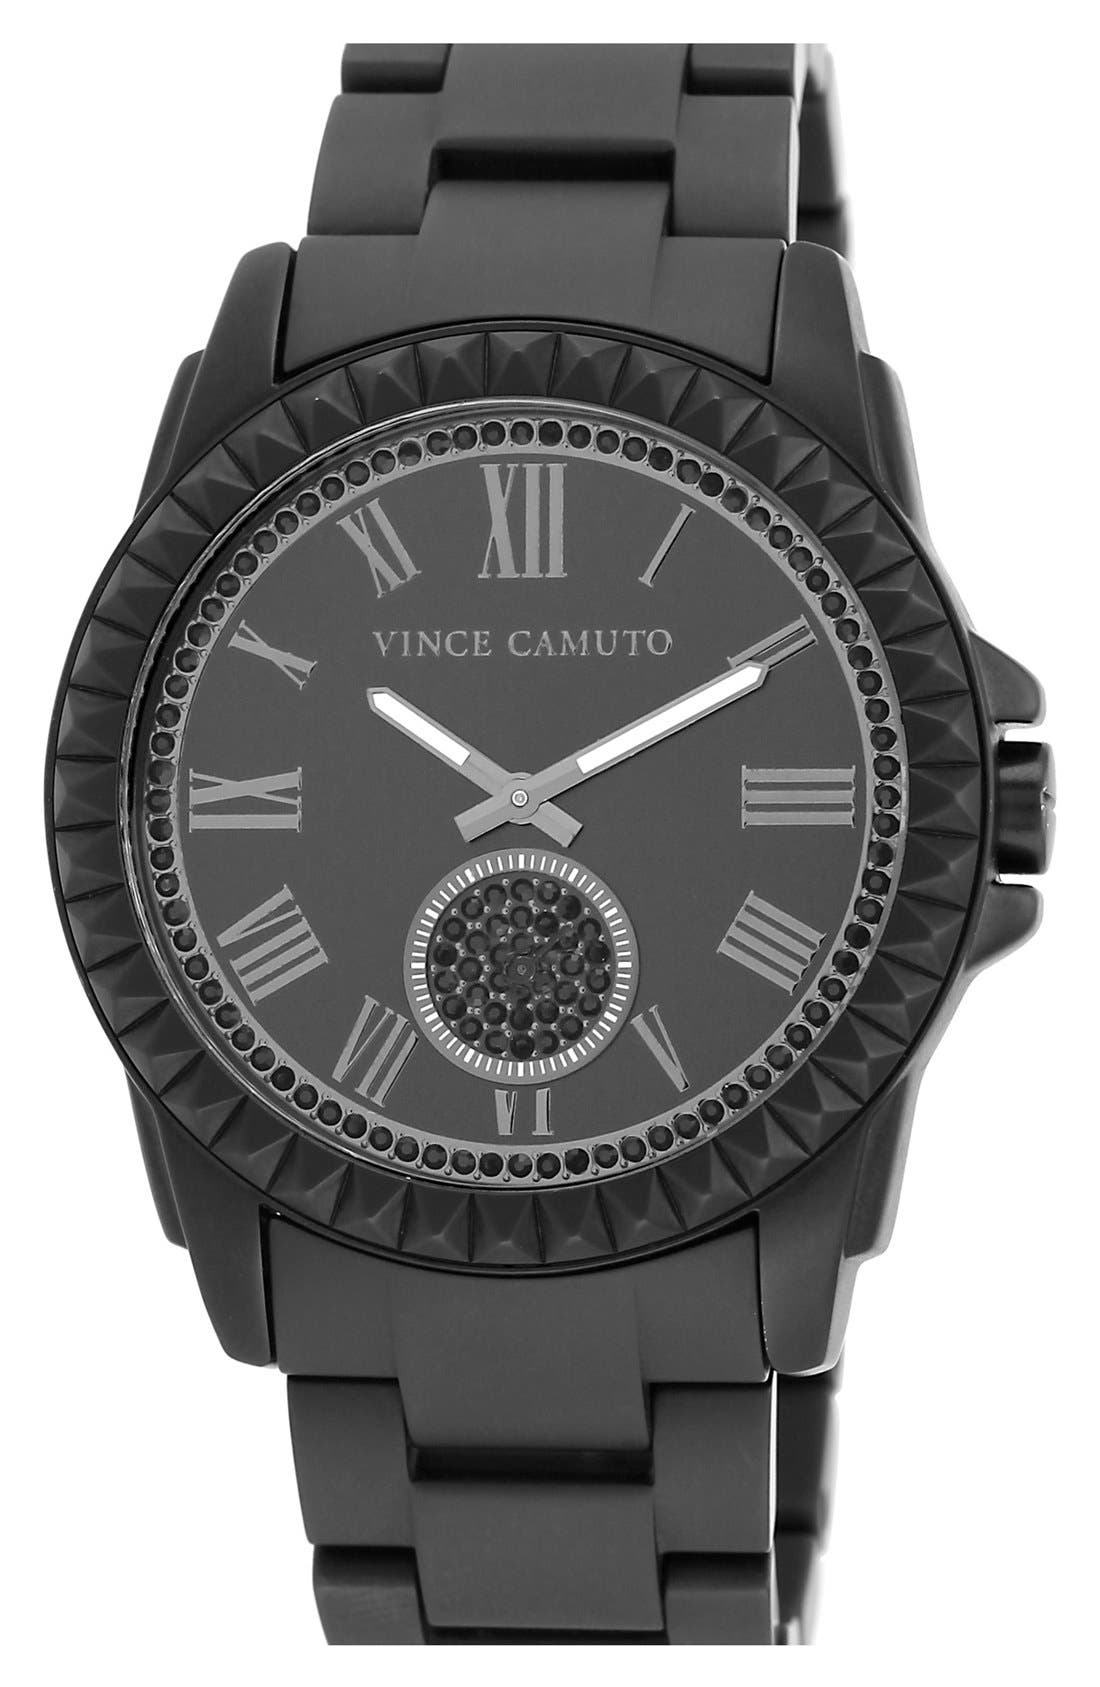 Main Image - Vince Camuto Pyramid Bezel Ceramic Bracelet Watch, 44mm x 49mm